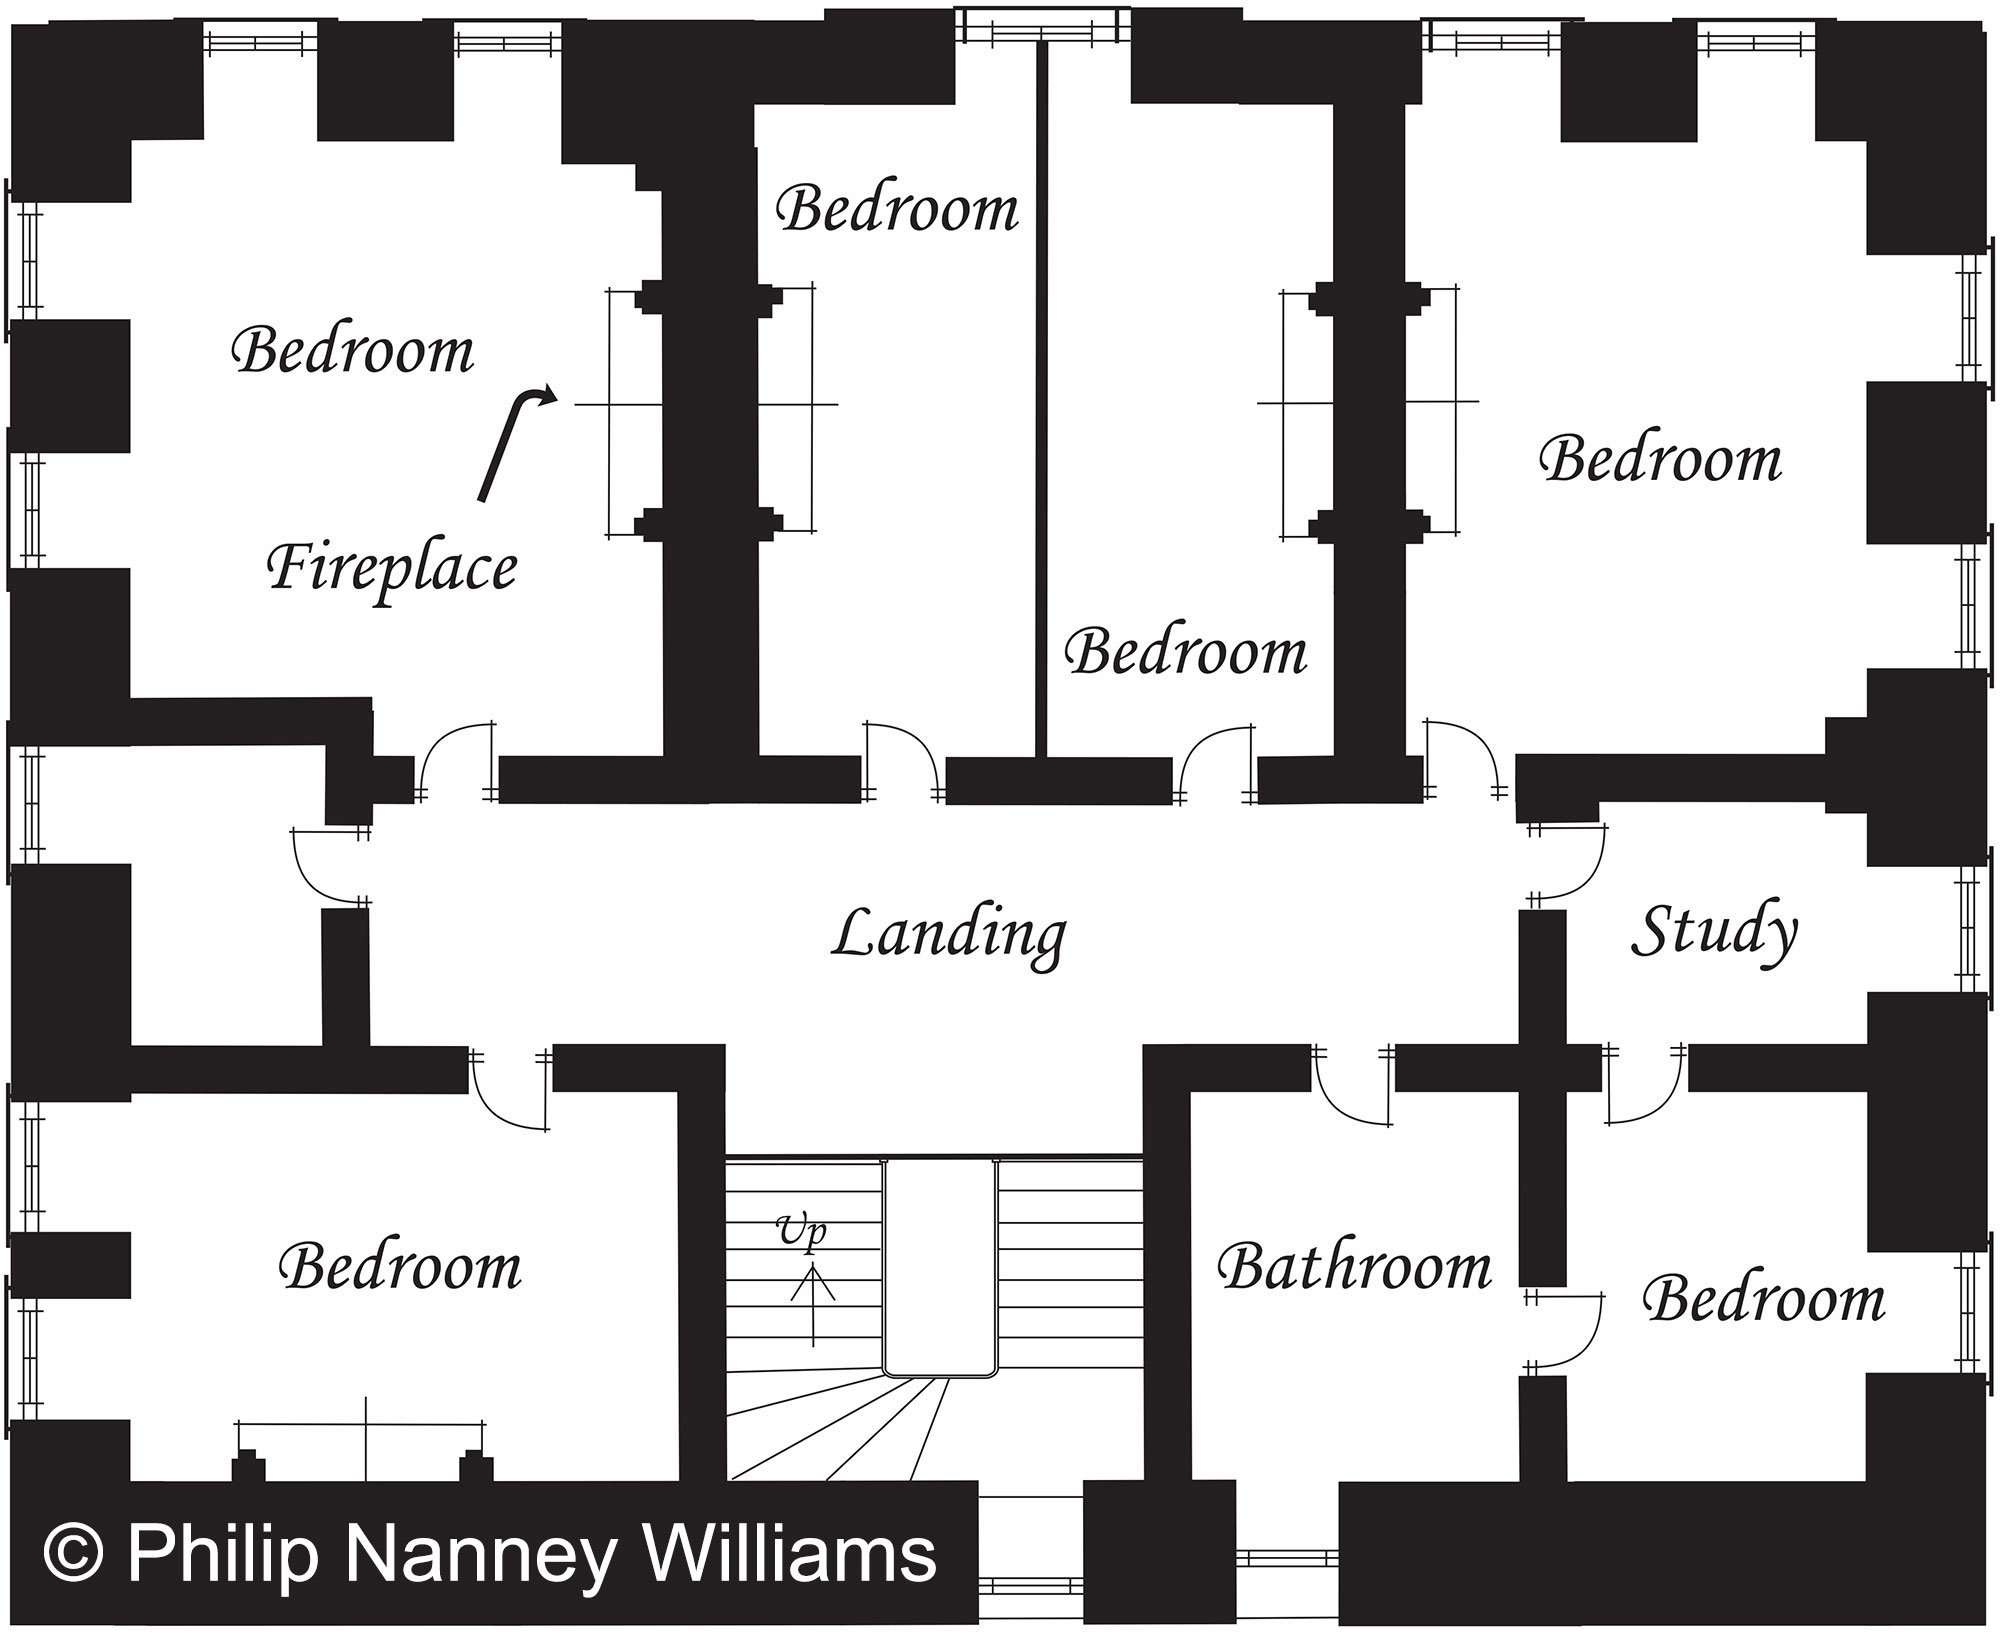 Second Floor - © Philip Nanney Williams